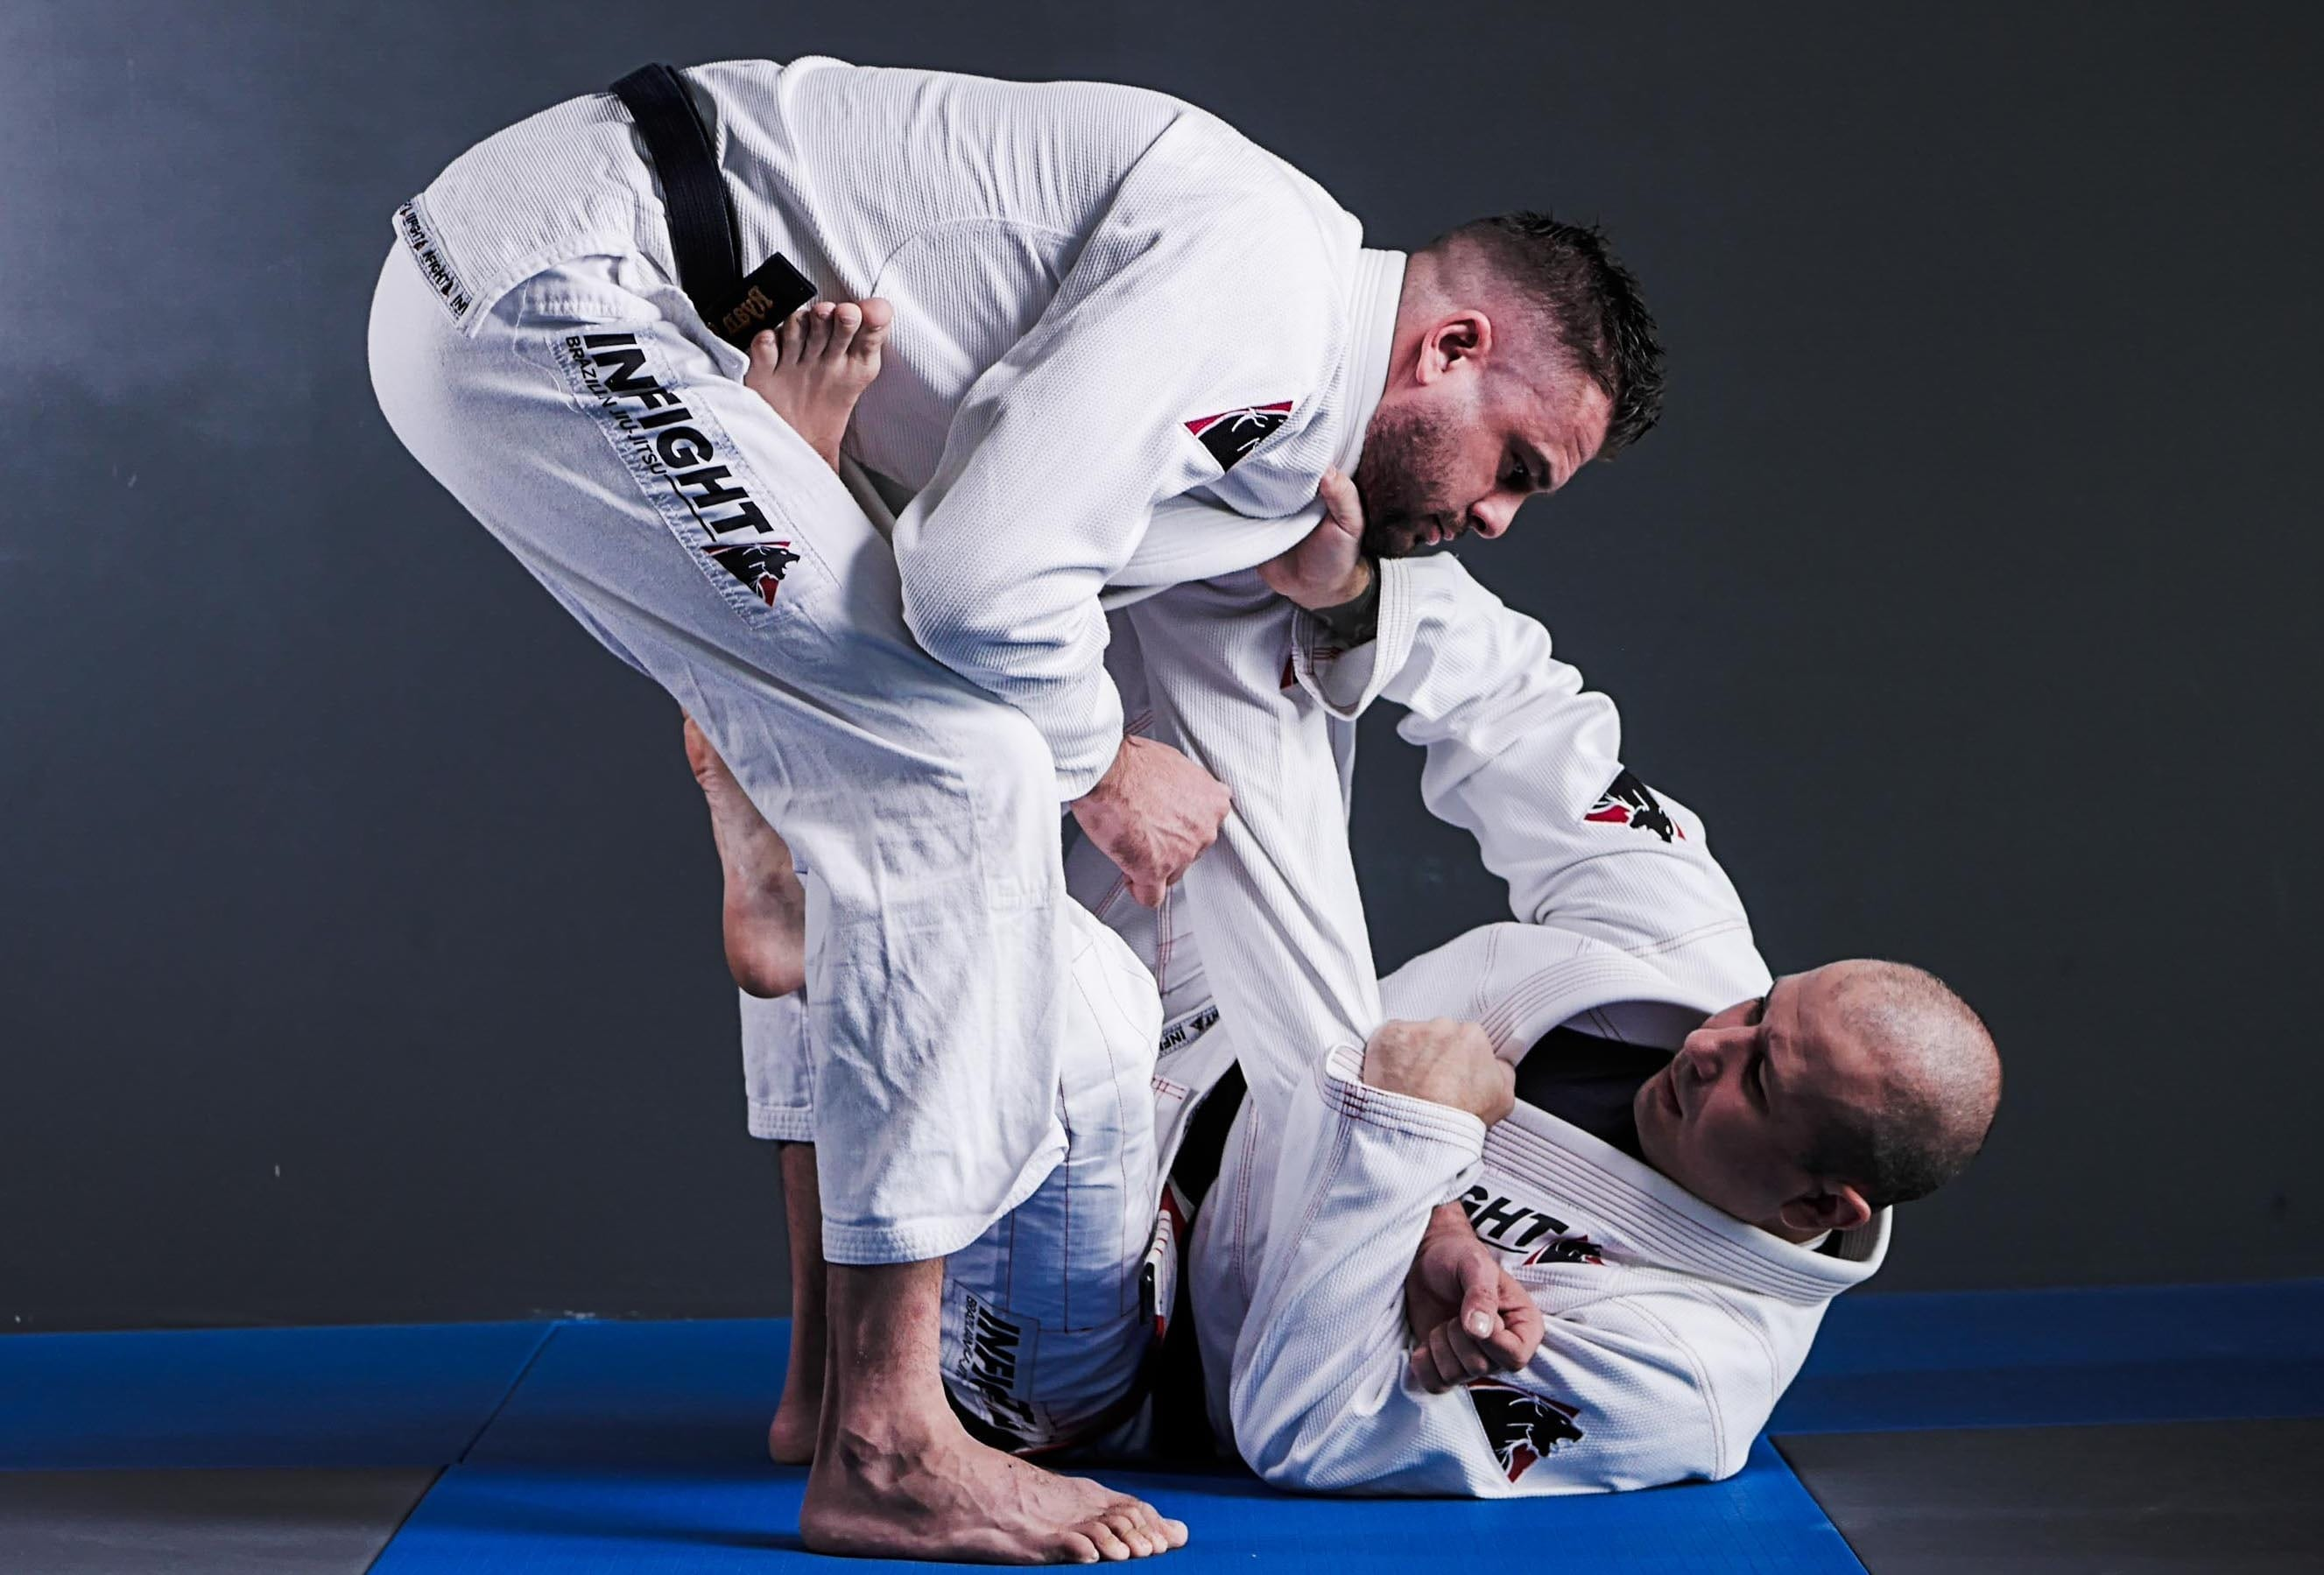 Eduardo Cadena and Ryan Christopher - BVJJ Instructors